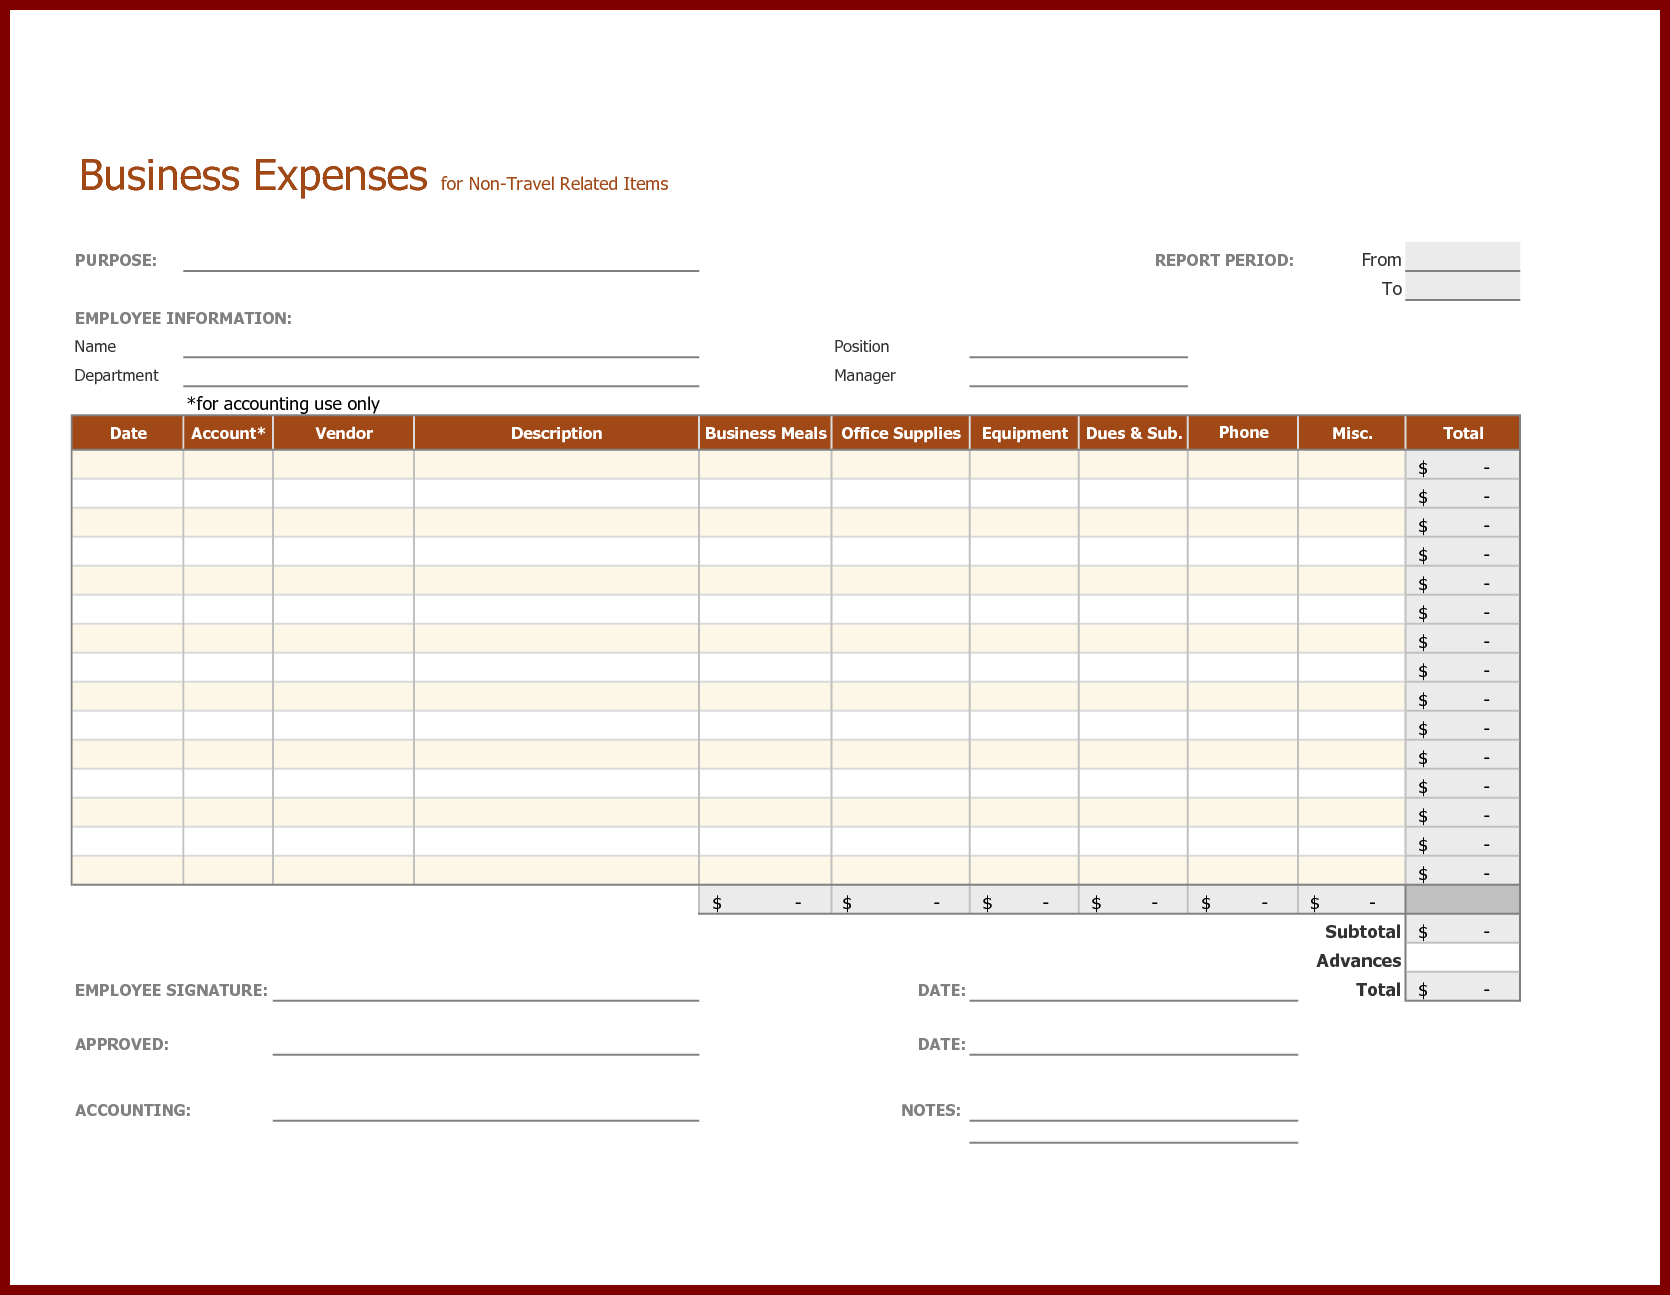 Travel Expenses Spreadsheet Template Intended For Monthly Business Expense Report And Sheet Template For Non Travel